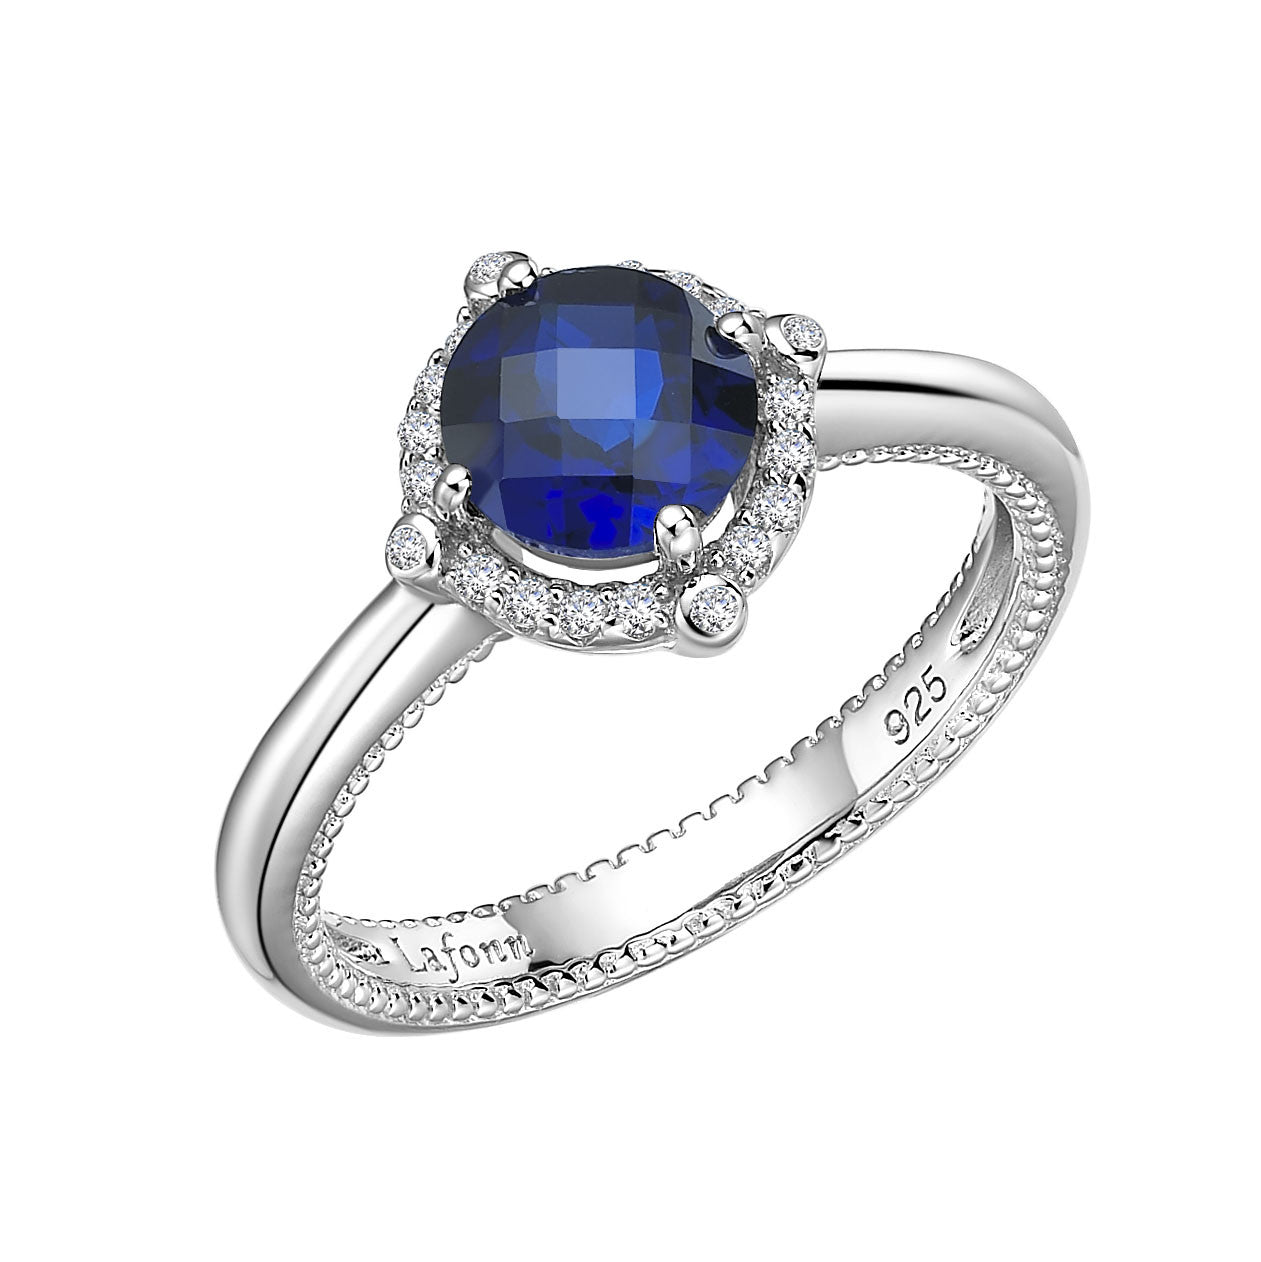 Sterling Silver and Platinum Lab Grown Sapphire Ring